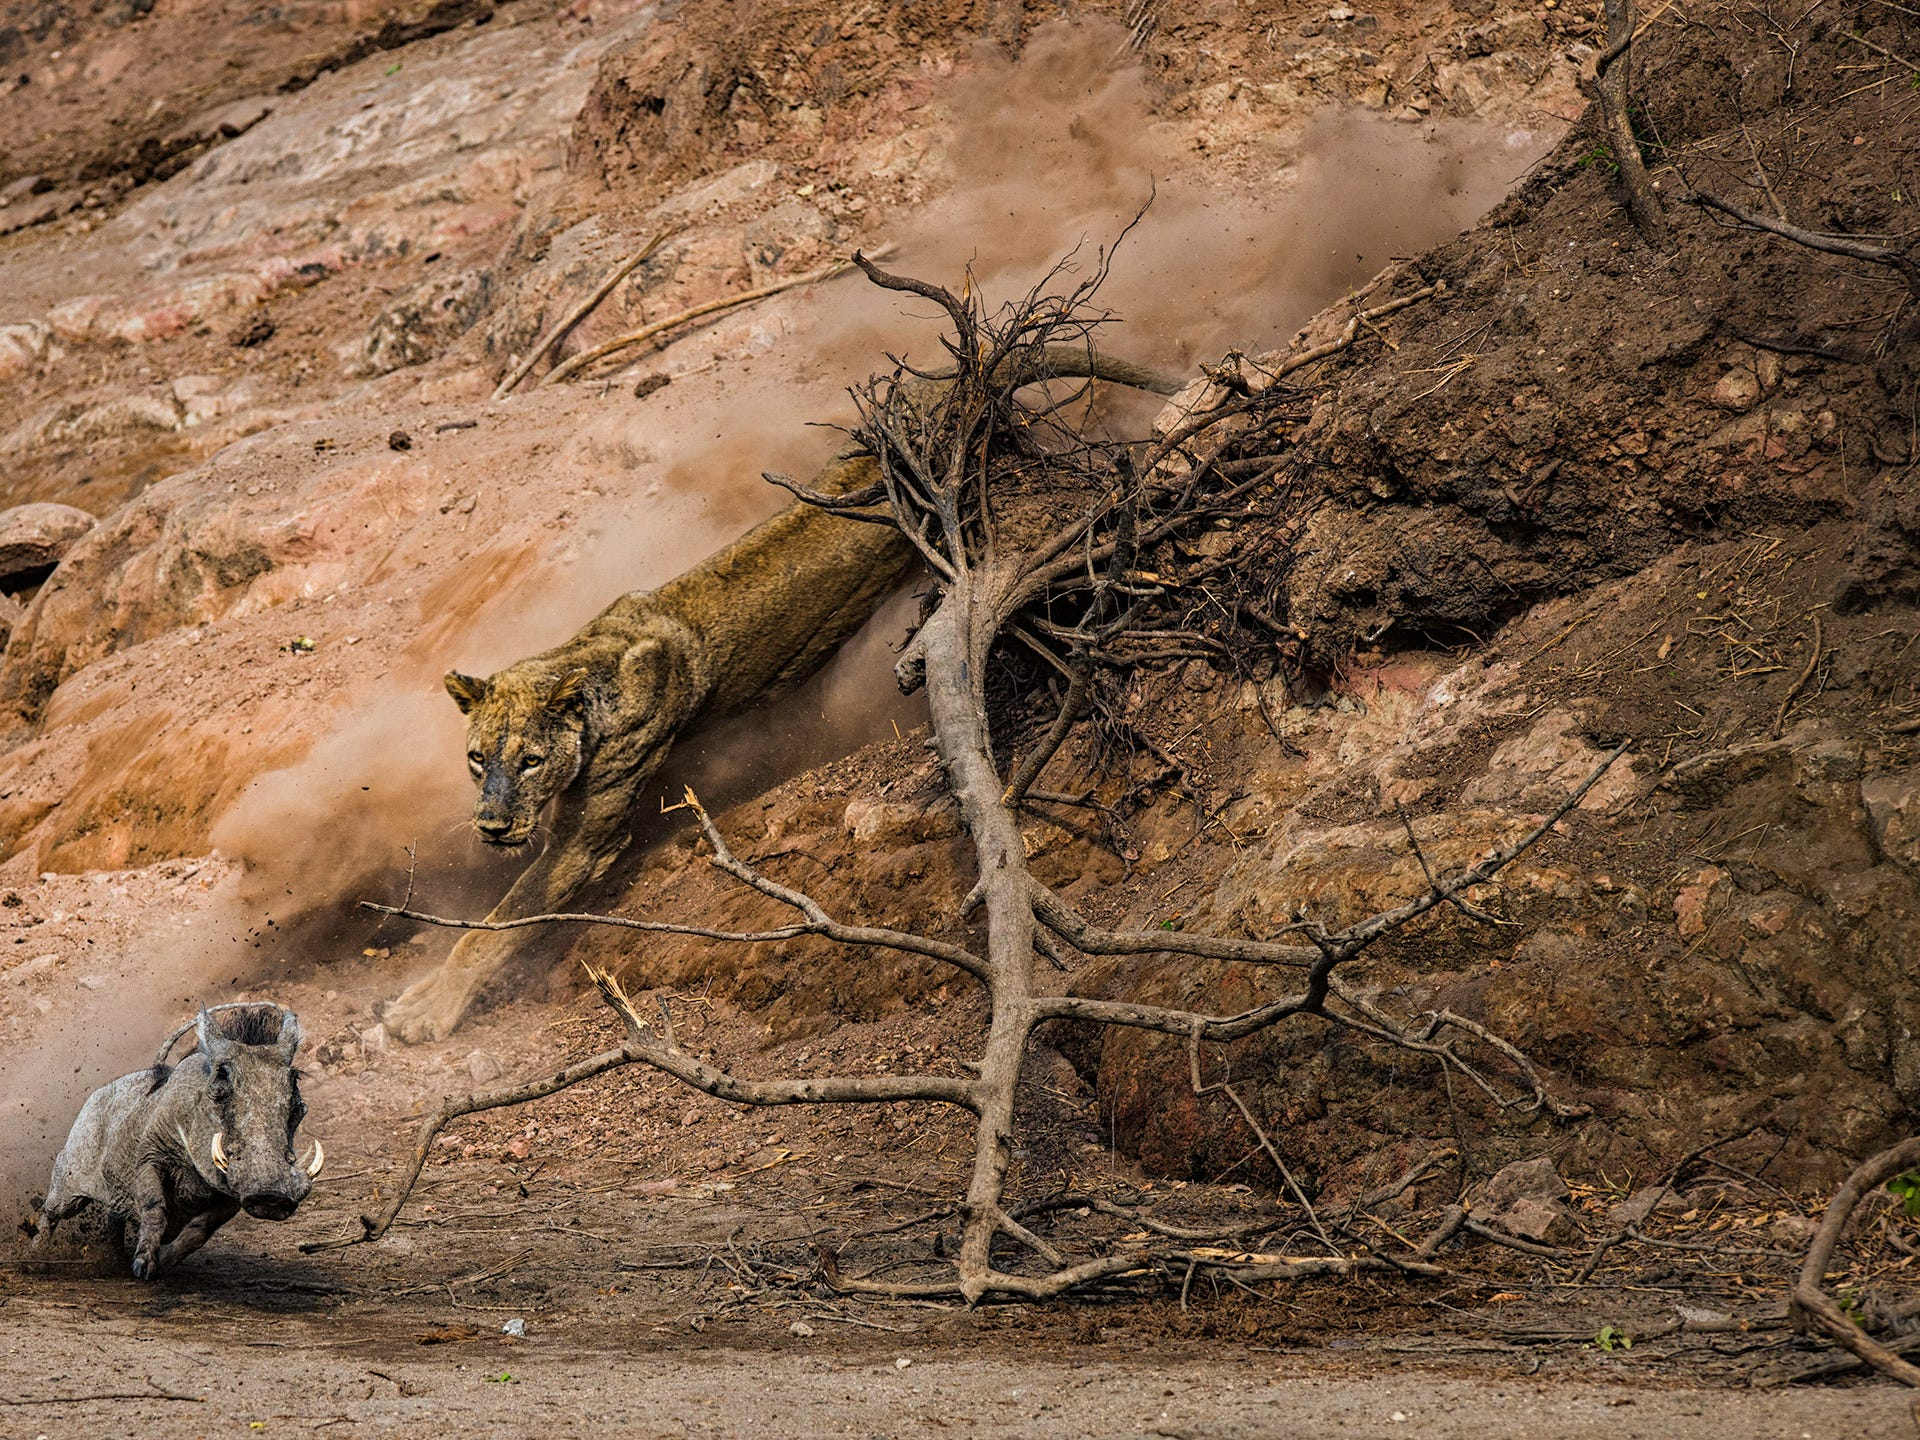 Ambush by Federico Veronesi, Kenya -- On a hot morning at the Chitake Springs, in Mana Pools National Park, Zimbabwe, Federico watched as an old lioness descended from the top of the riverbank. SheÕd been lying in wait to ambush any passing animals visiting a nearby waterhole further along the riverbed. -- Nikon D810 + 400mm f2.8 lens; 1/1000 sec at f5 (-1e/v); ISO 140.